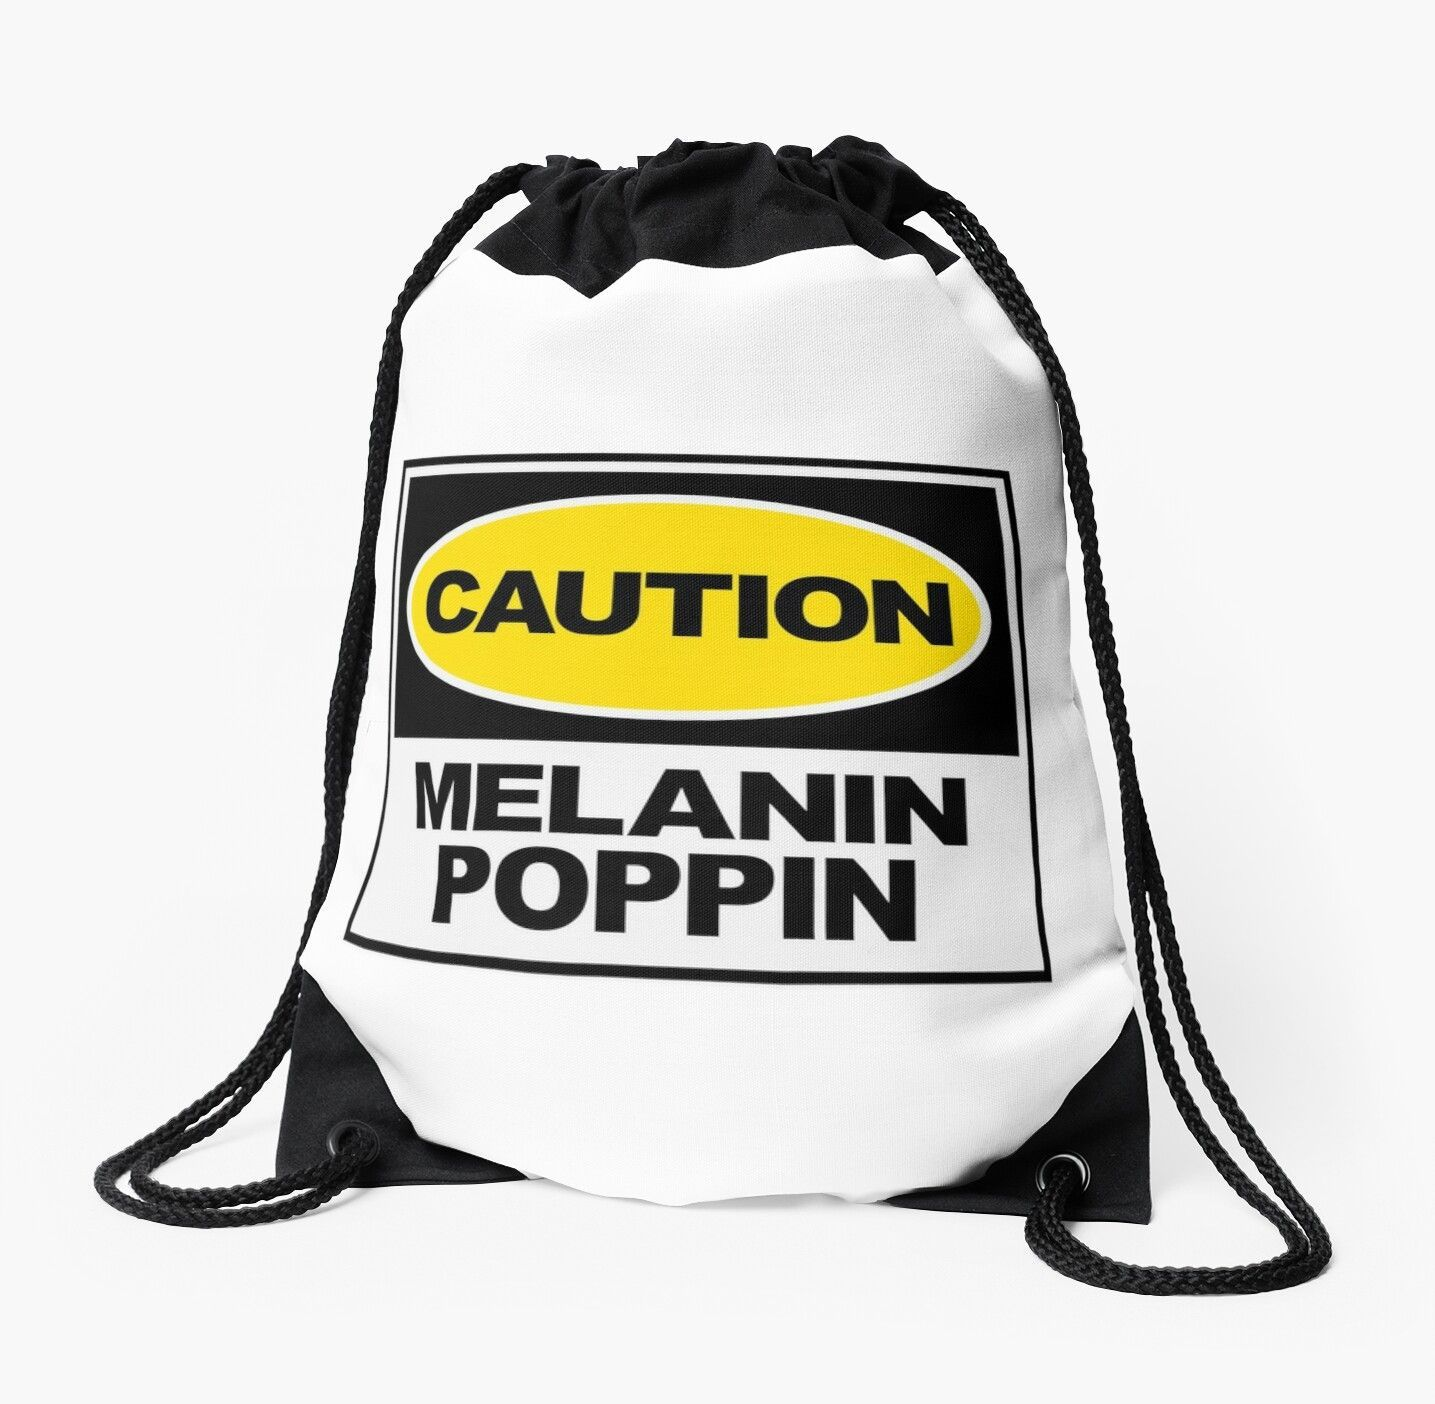 Caution Melanin Poppin Melanin Poppin Shirt Melanin Queen Natural Girls Rock Black Girl Magic Drawstring Bag By Coilsandglory In 2020 Natural Girls Rock Black Girl Magic Black Girl